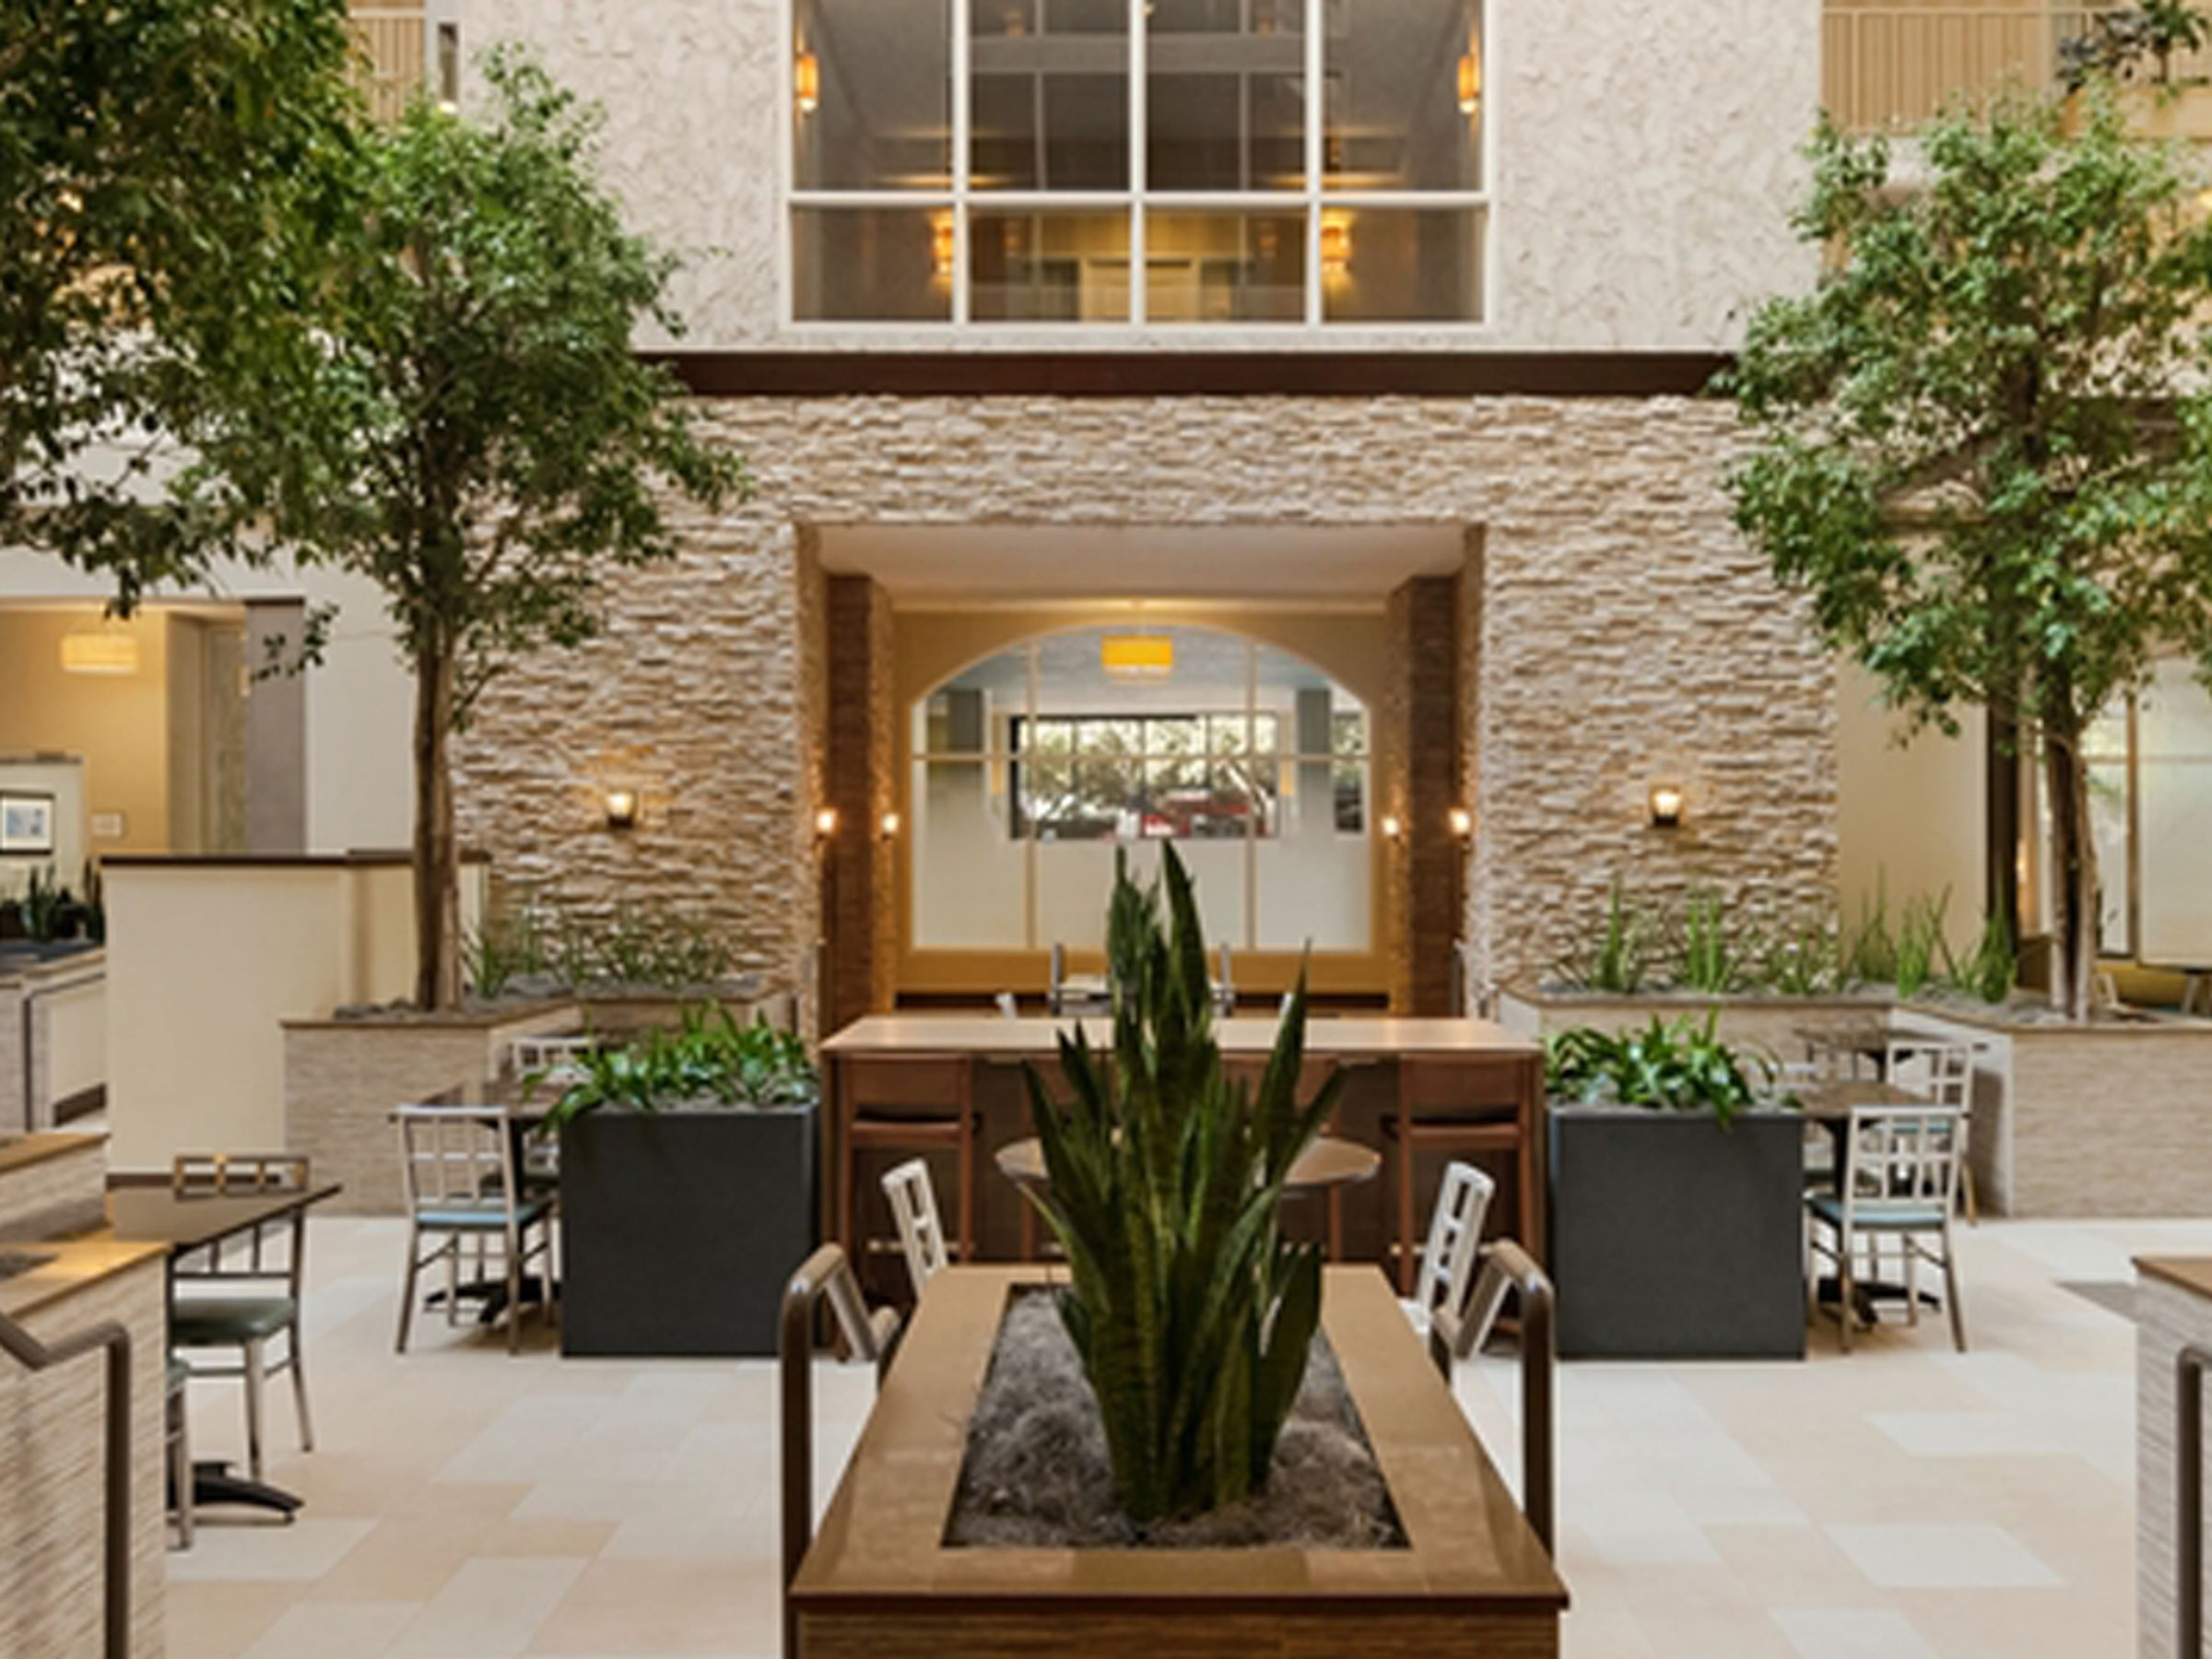 Embassy Suites by Hilton Dallas Market Center in Beyond Dallas